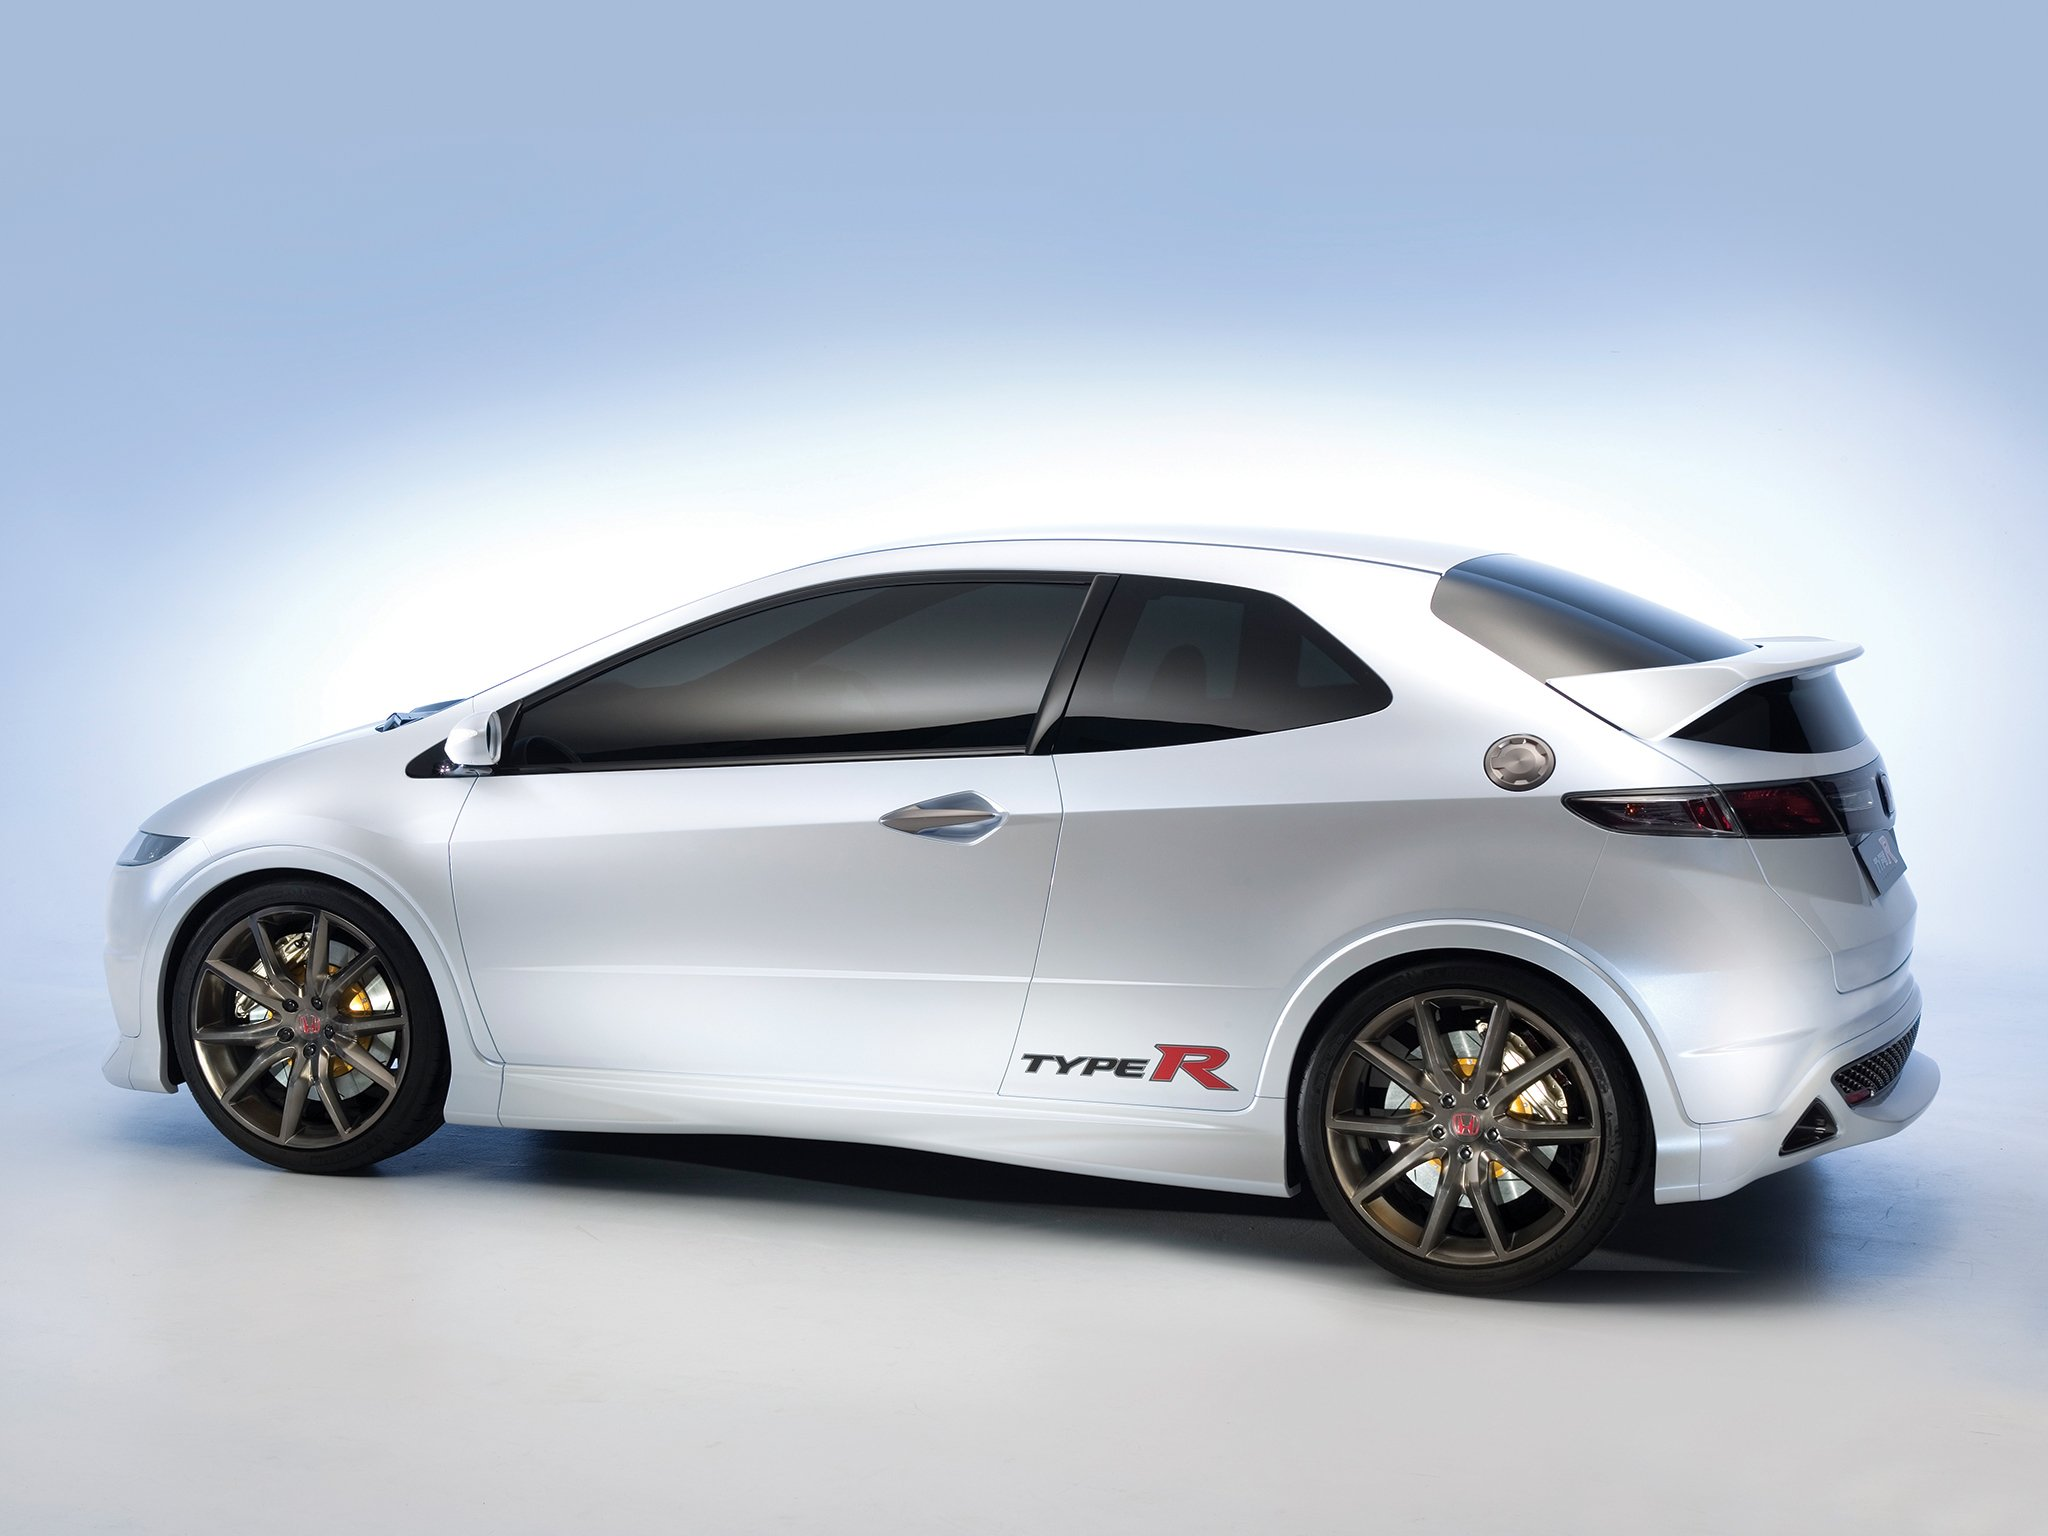 2006 honda civic type r concept r wallpaper 2048x1536 249936 wallpaperup